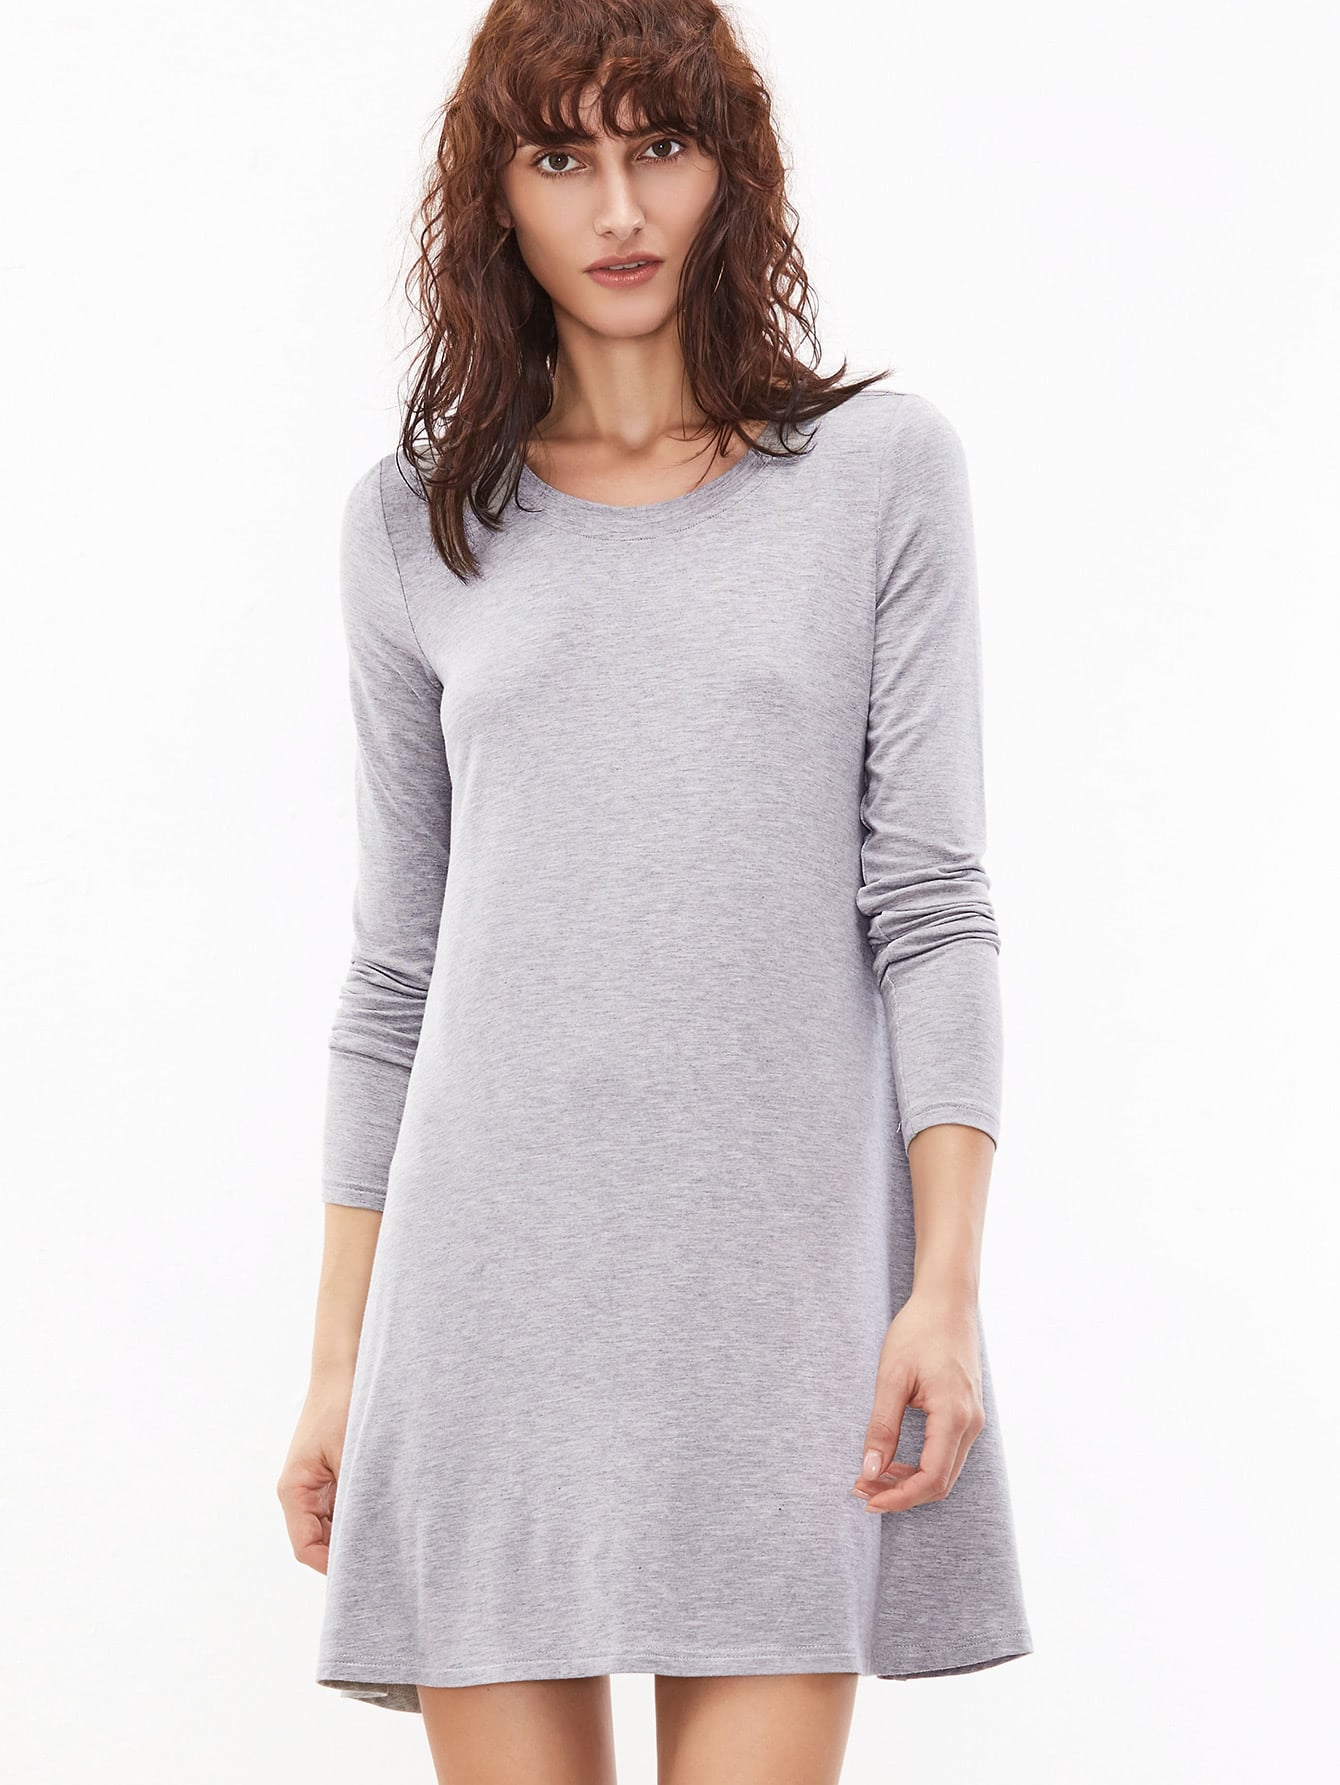 Heather Grey Long Sleeve T-shirt Dress dress161129703